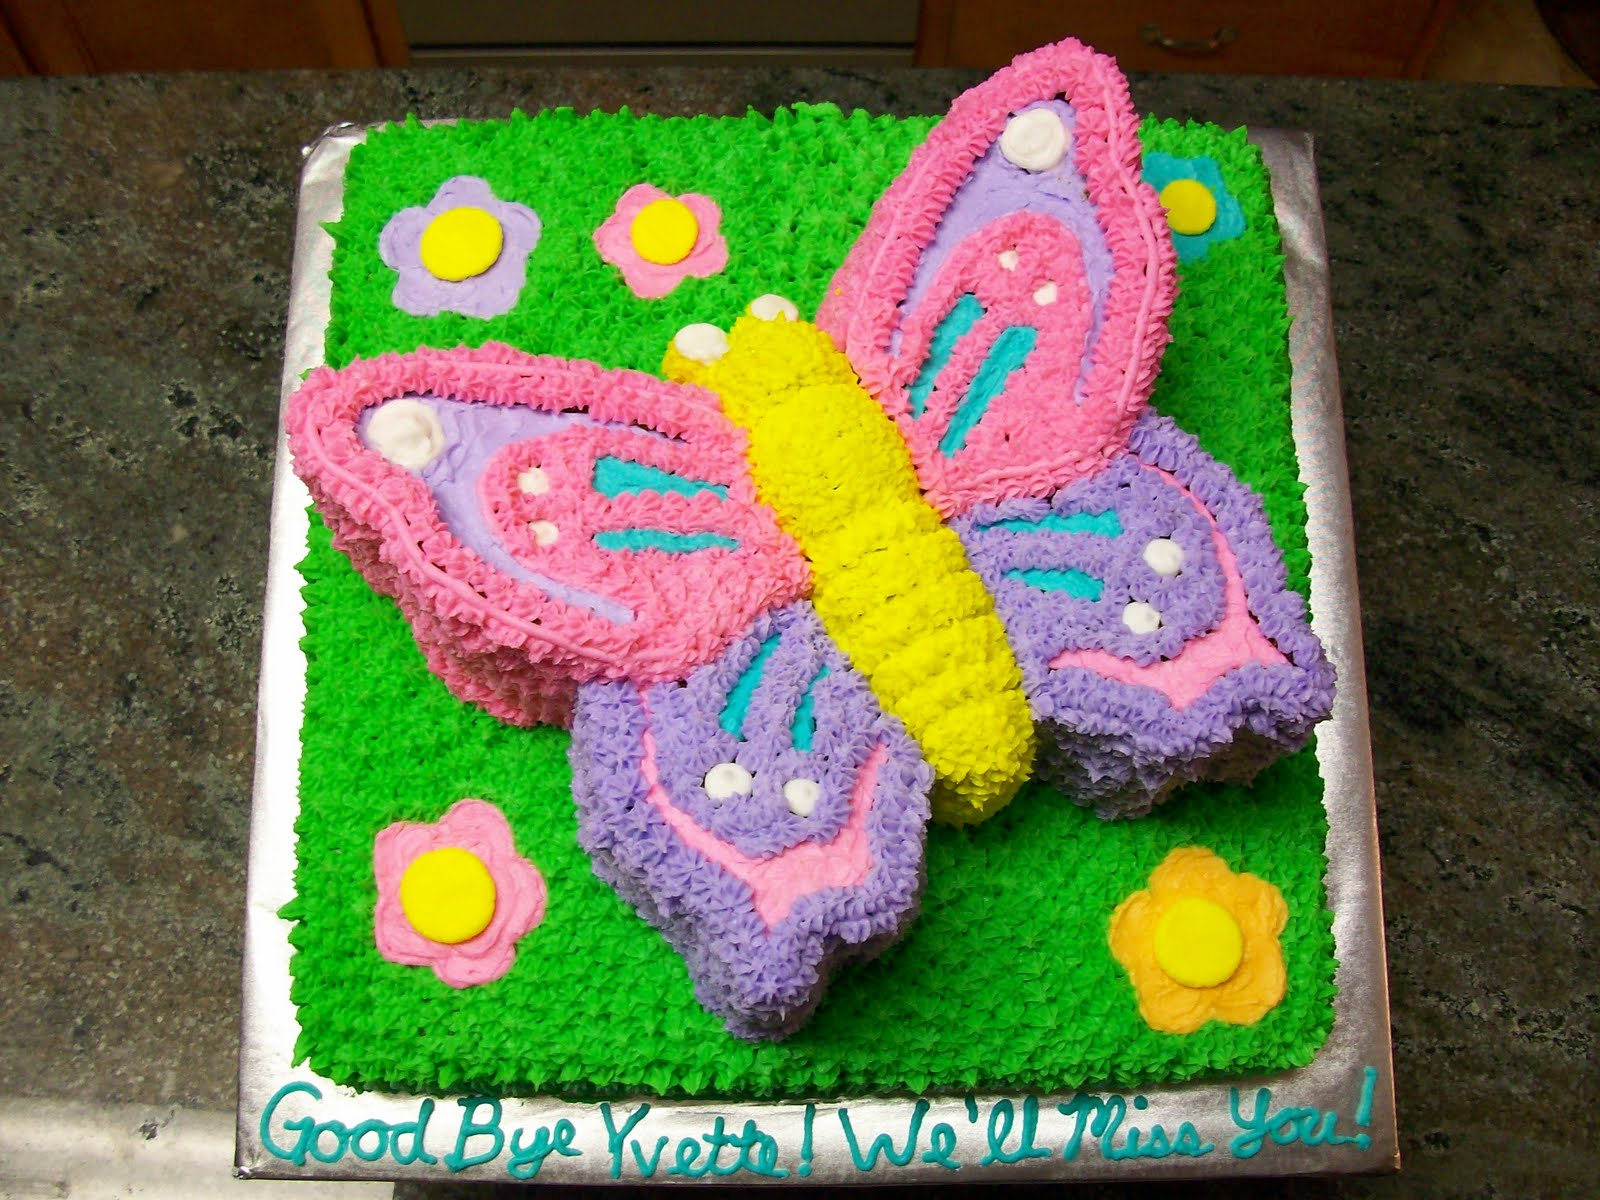 this cake was made using the butterfly cake pan from nordicware and